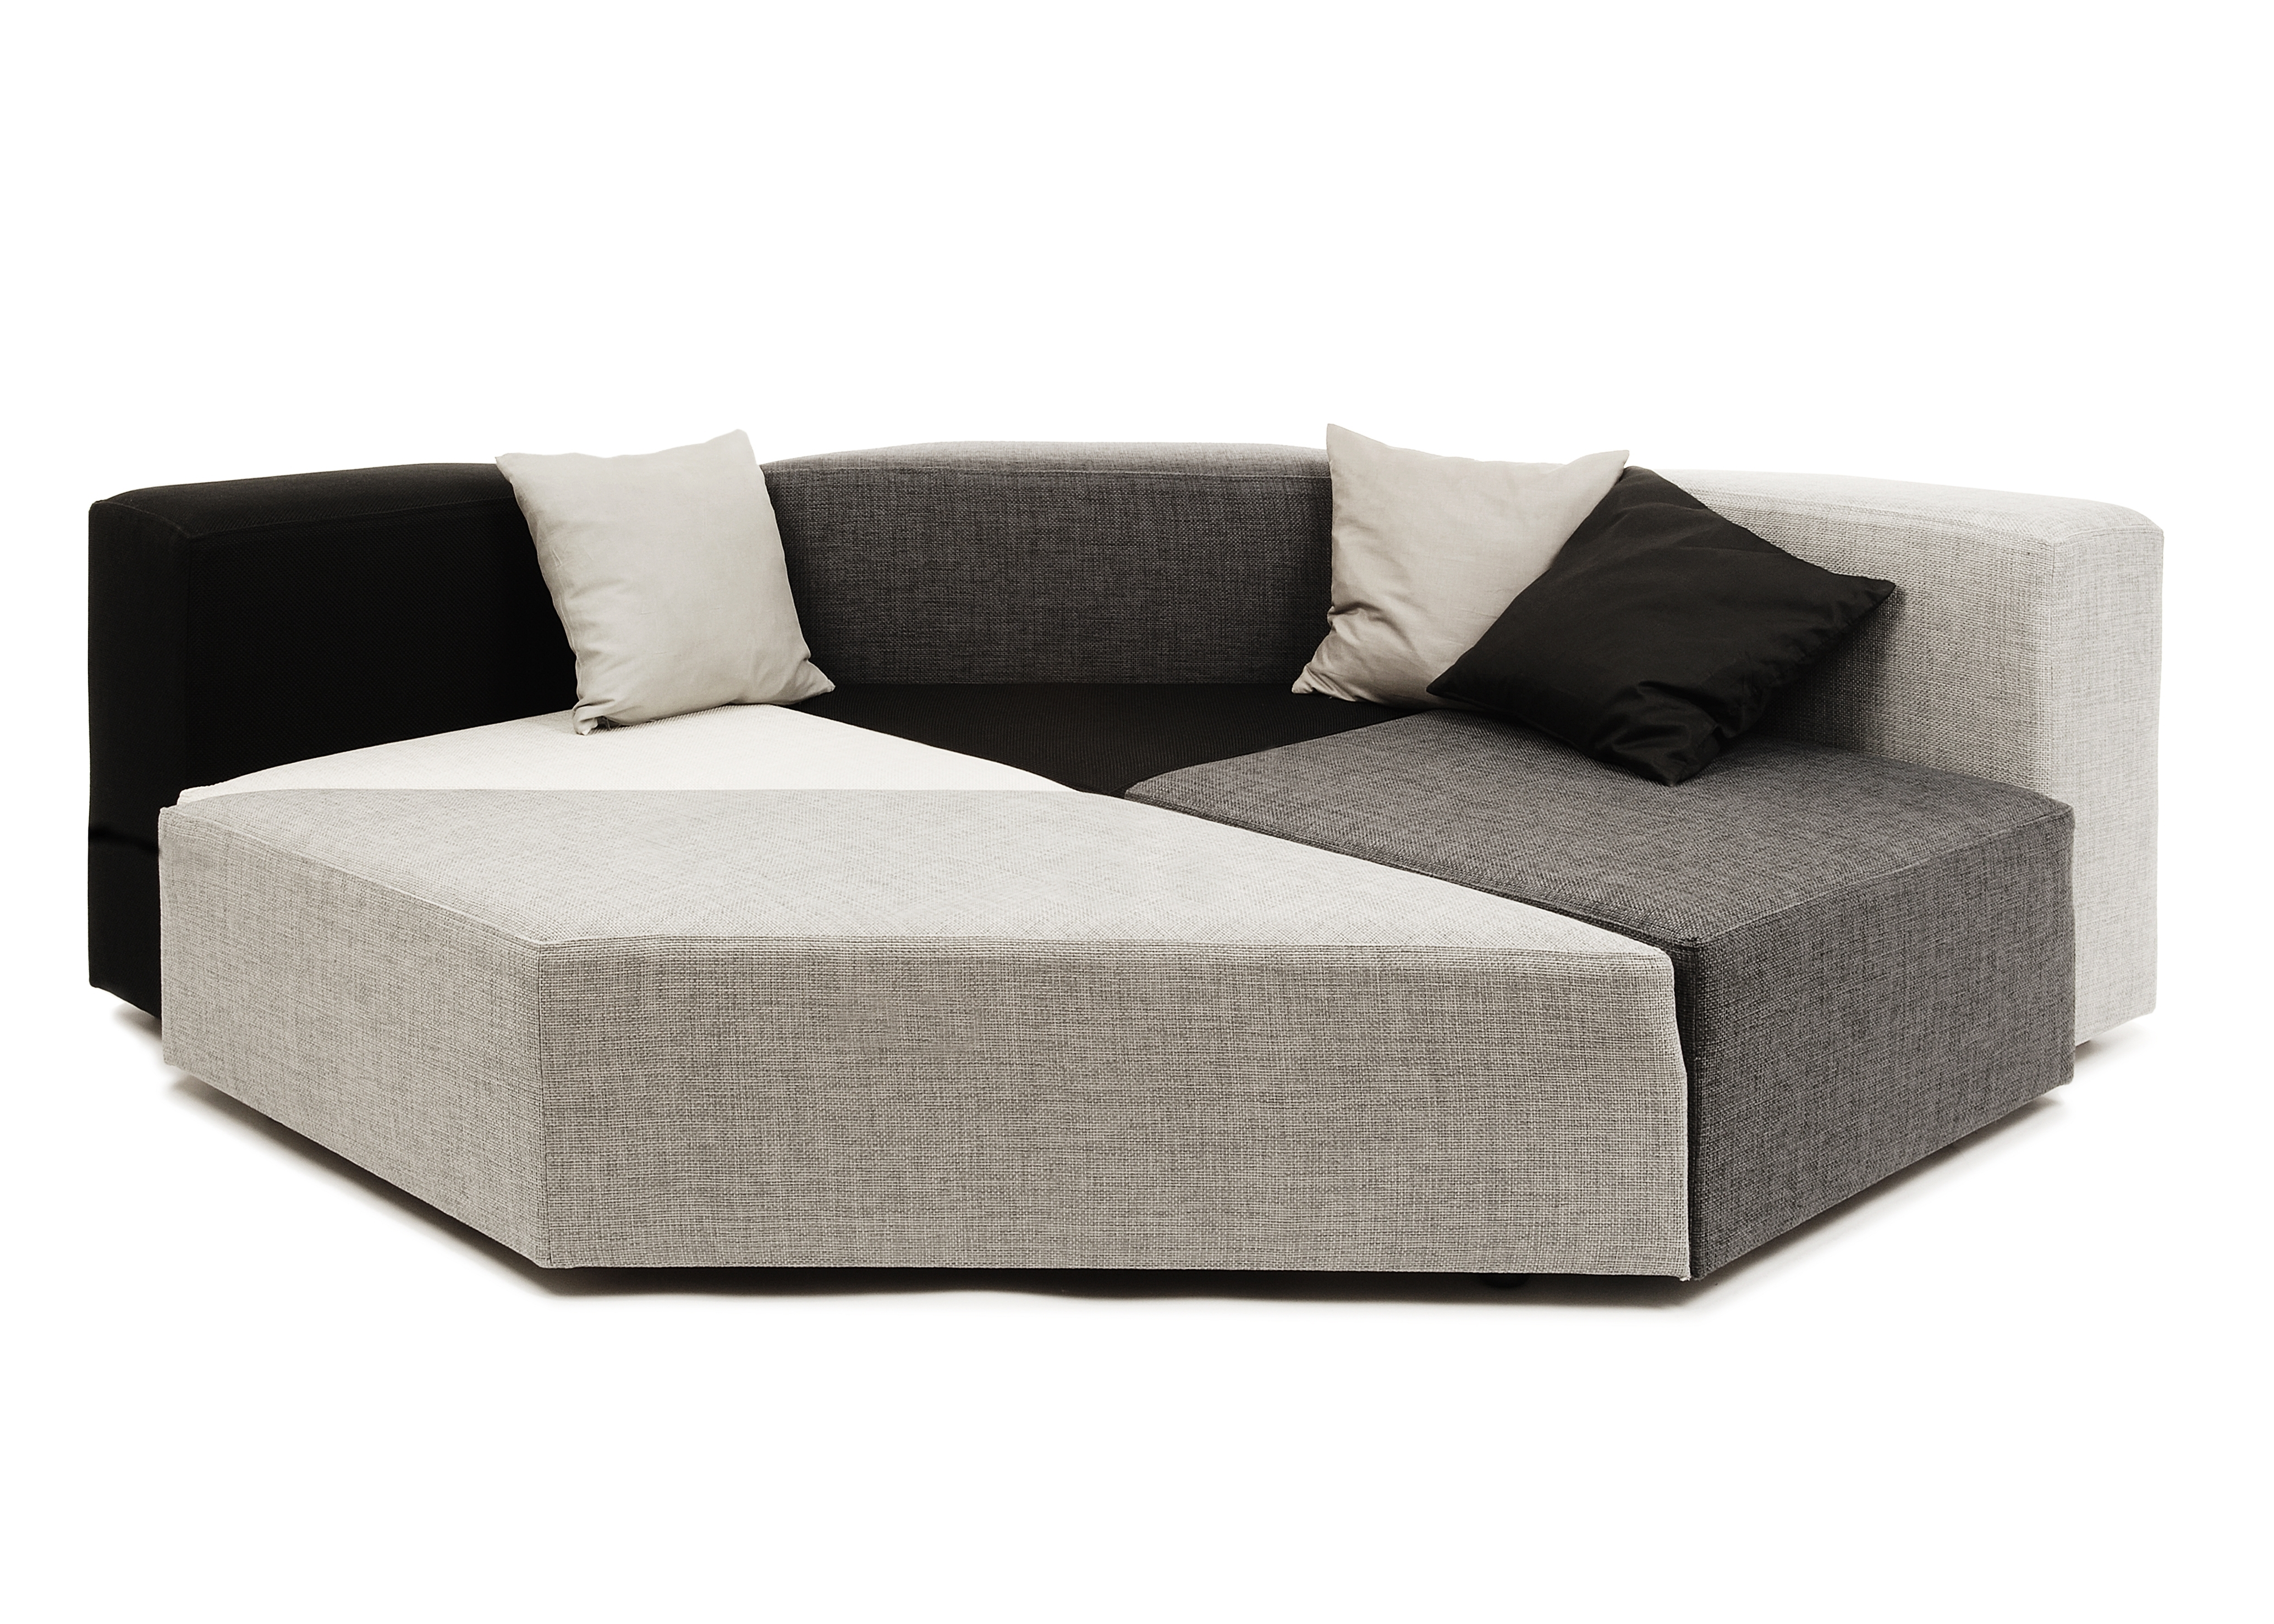 Dark Brown Velvet Sectional Couch With Storage Sofa For Small inside Current Small Modular Sofas